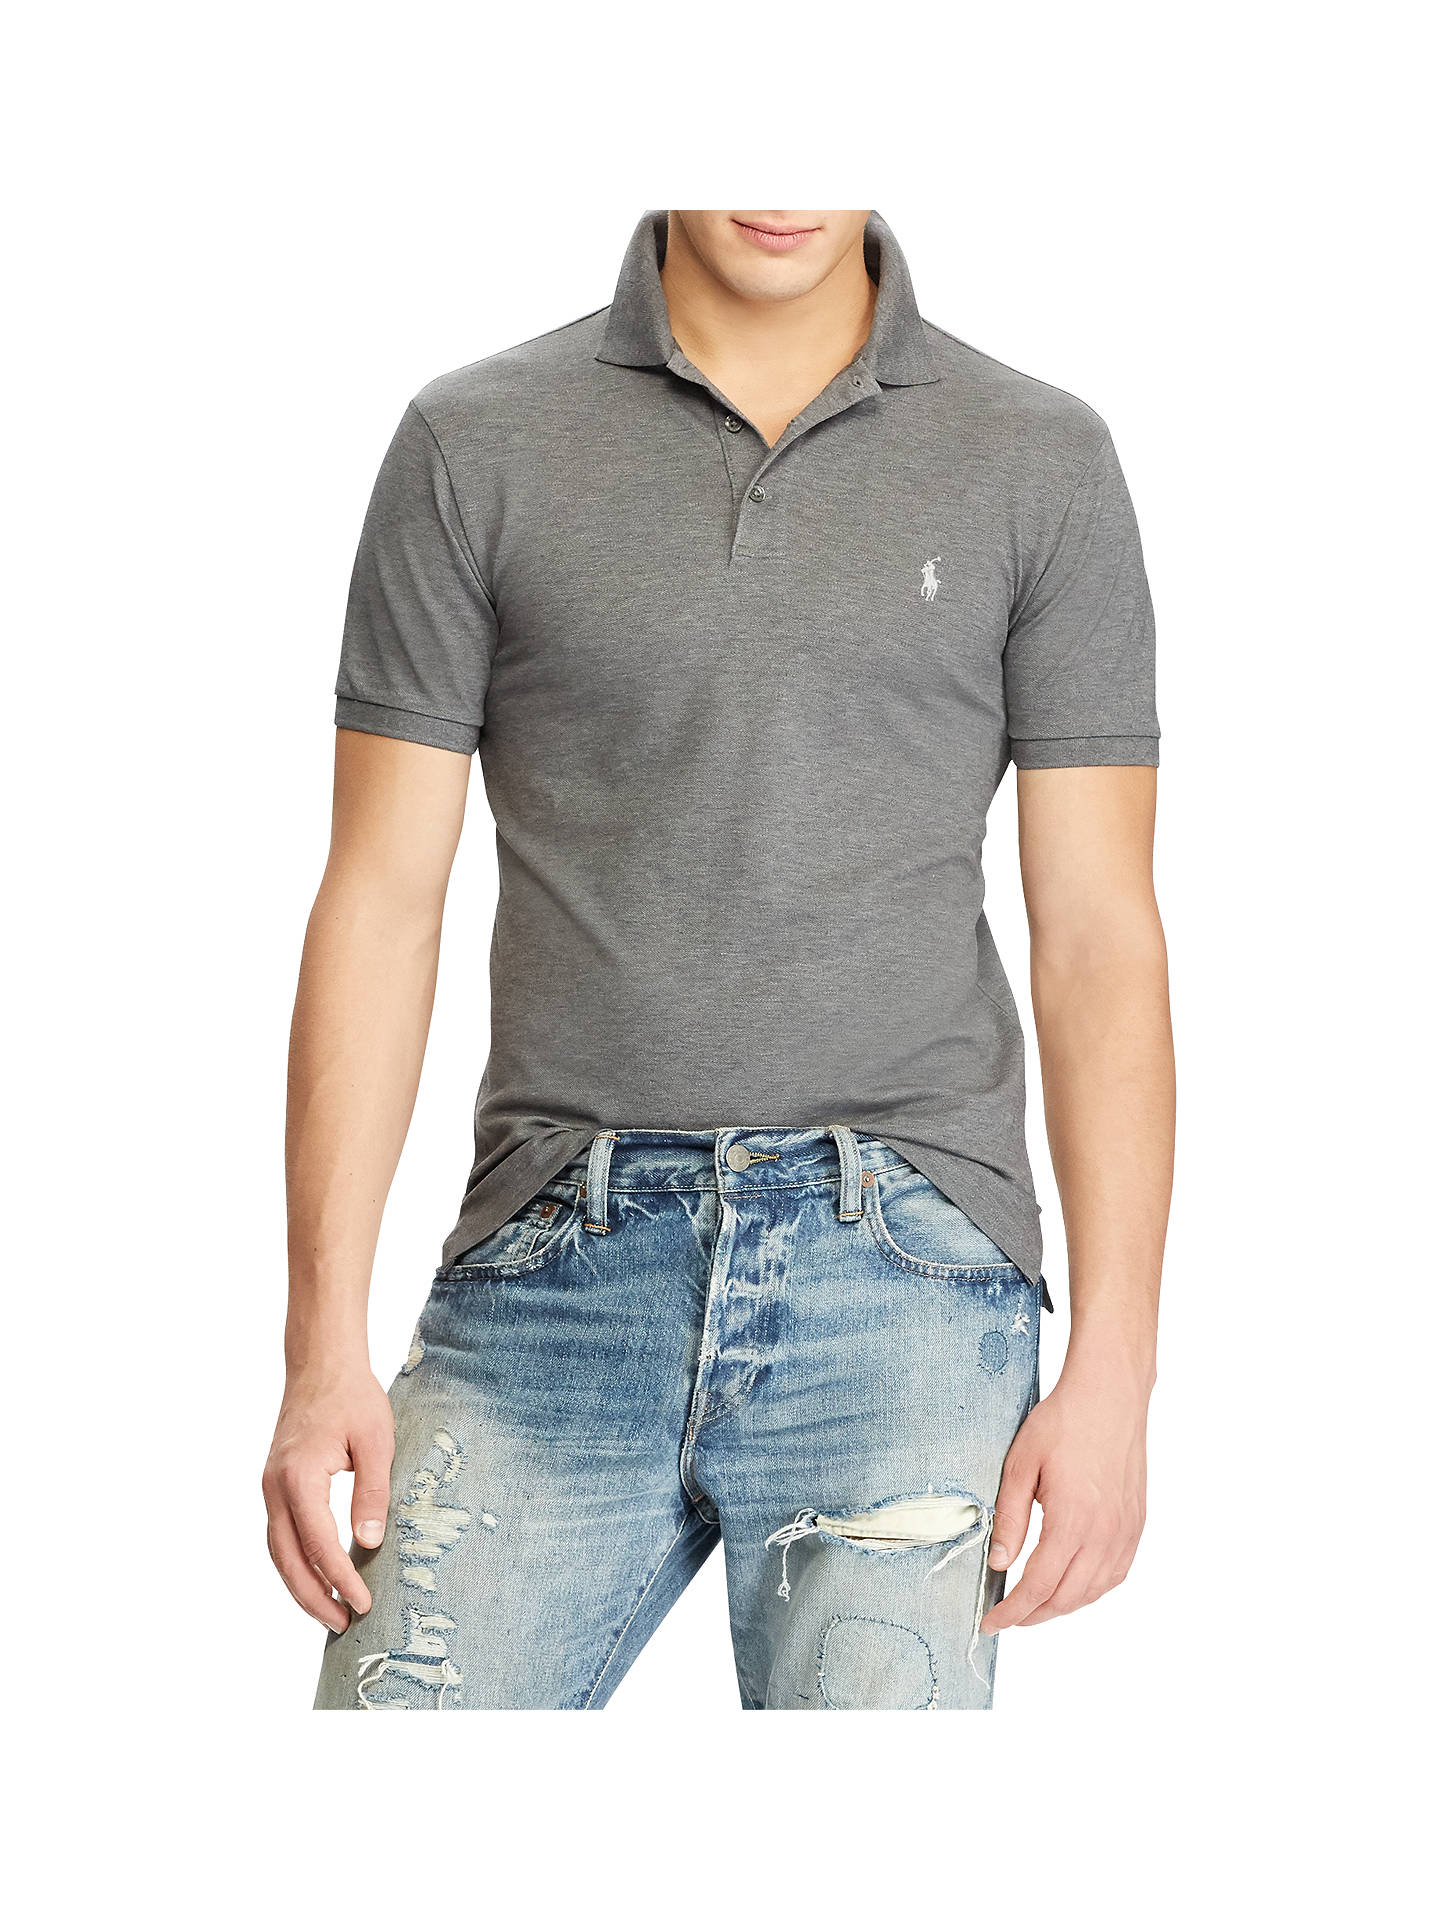 29c1a46b4 Buy Polo Ralph Lauren Custom Slim Fit Polo Top, Foster Grey Heather, S  Online ...